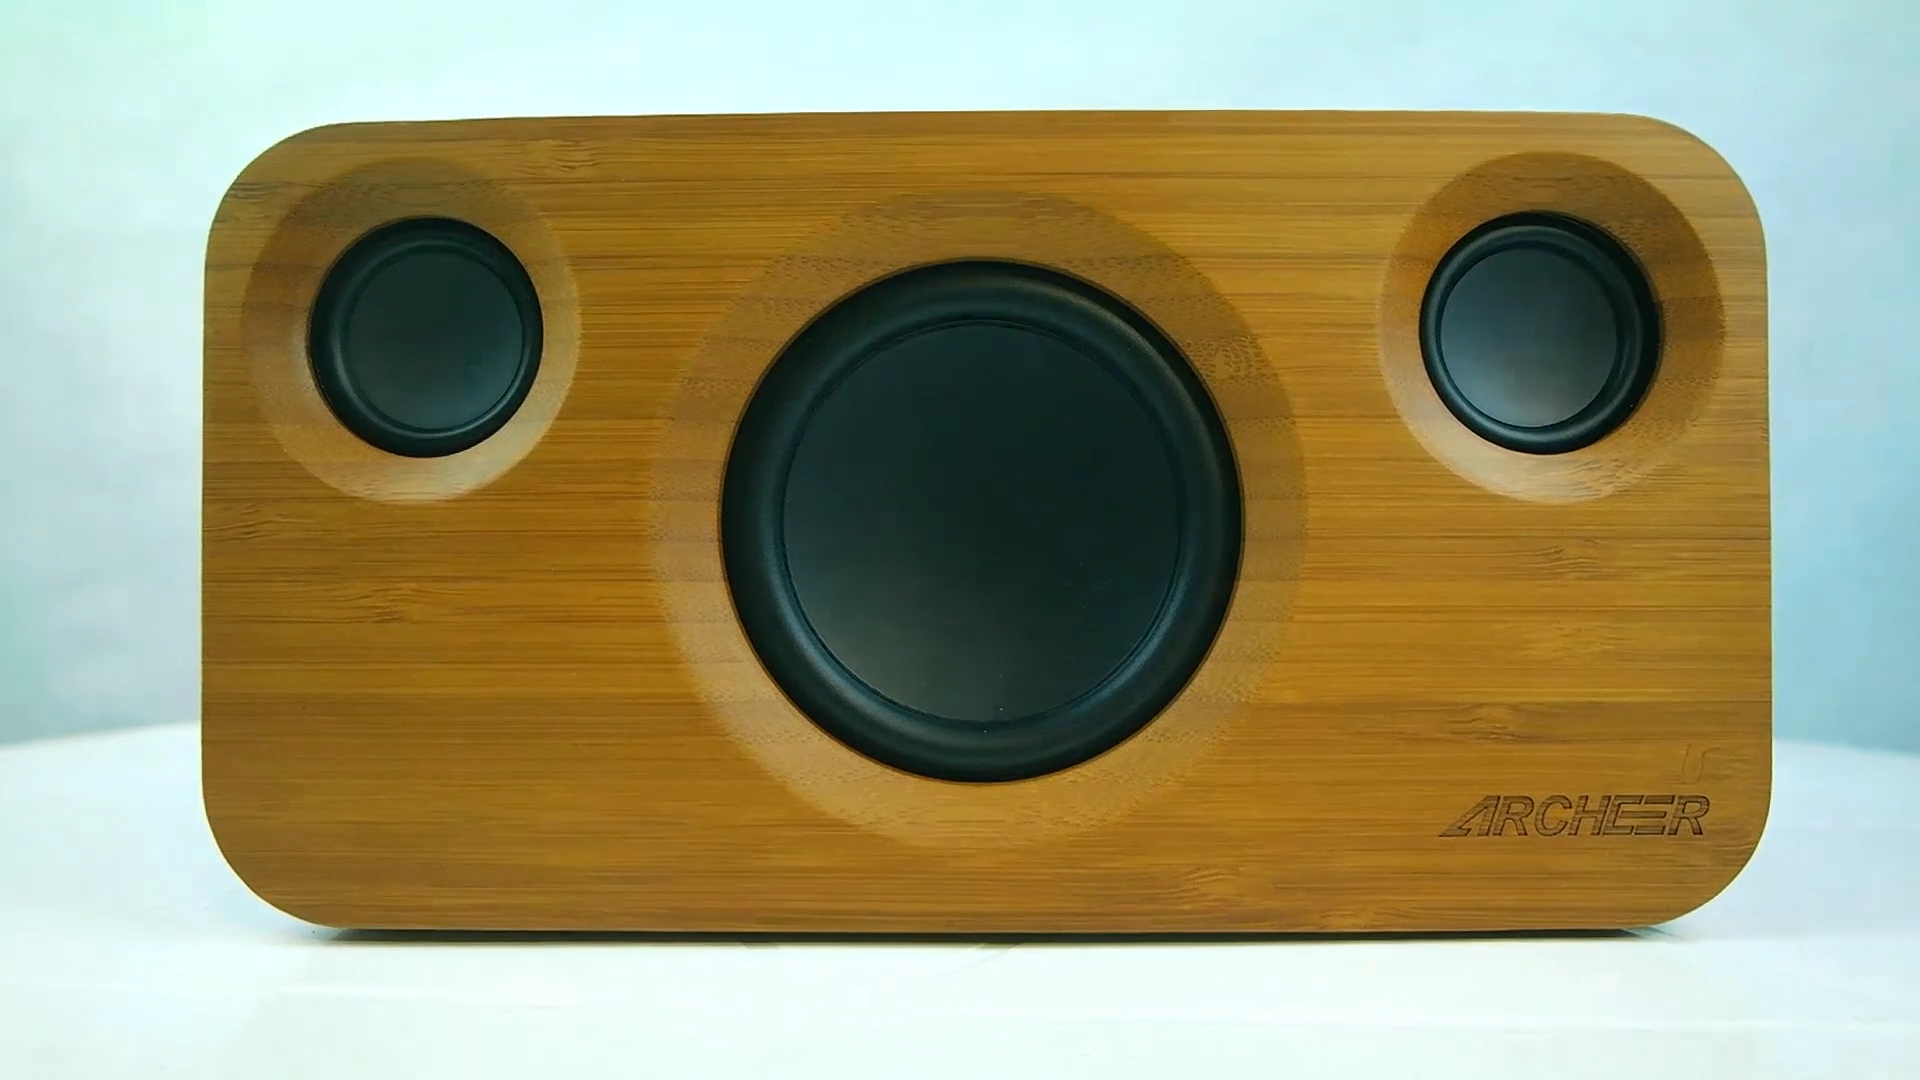 archeer-a320-bamboo-bluetooth-speaker_29474645146_o.png